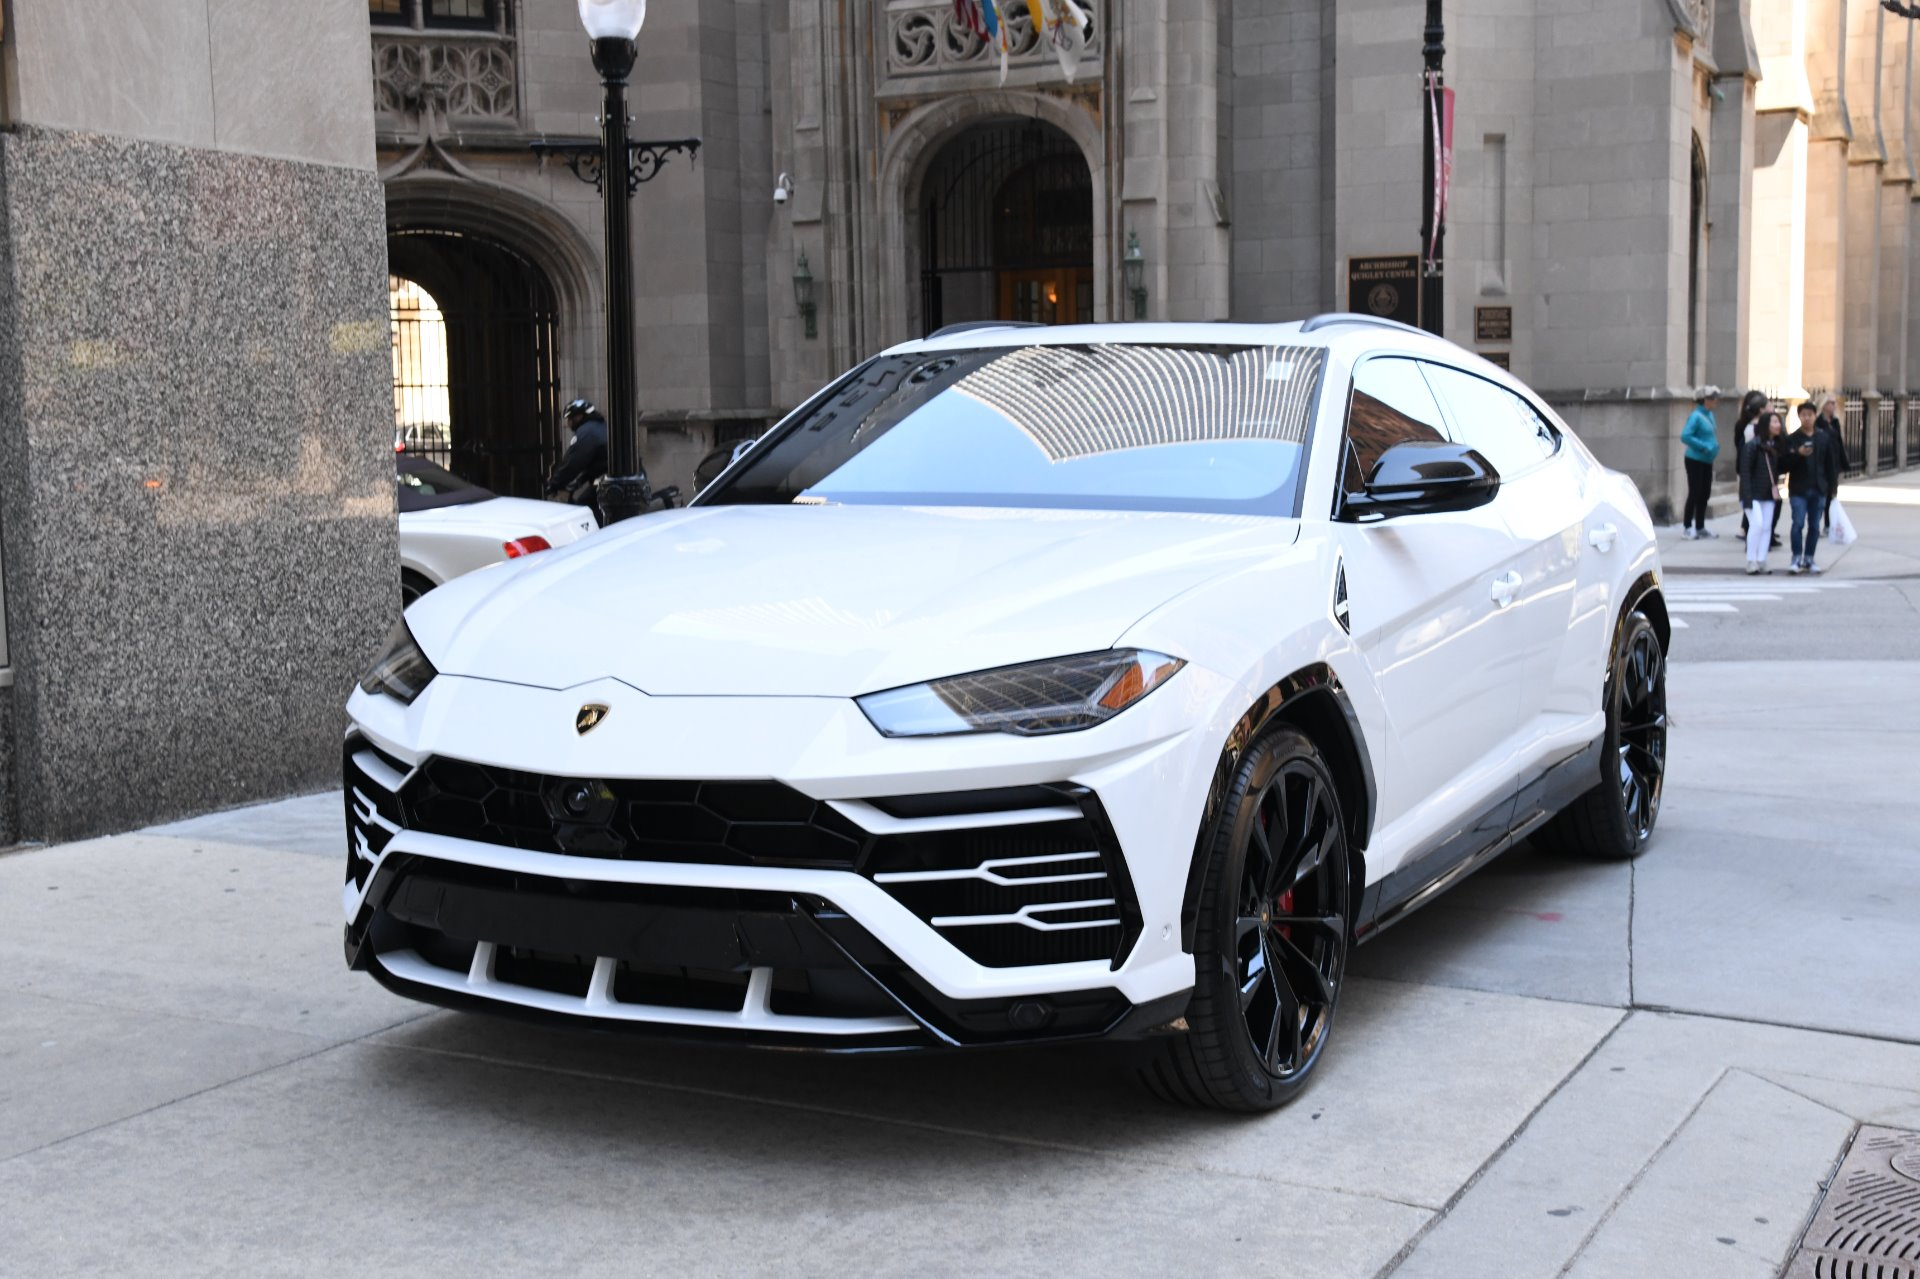 2019 Lamborghini Urus Stock # 04482 for sale near Chicago